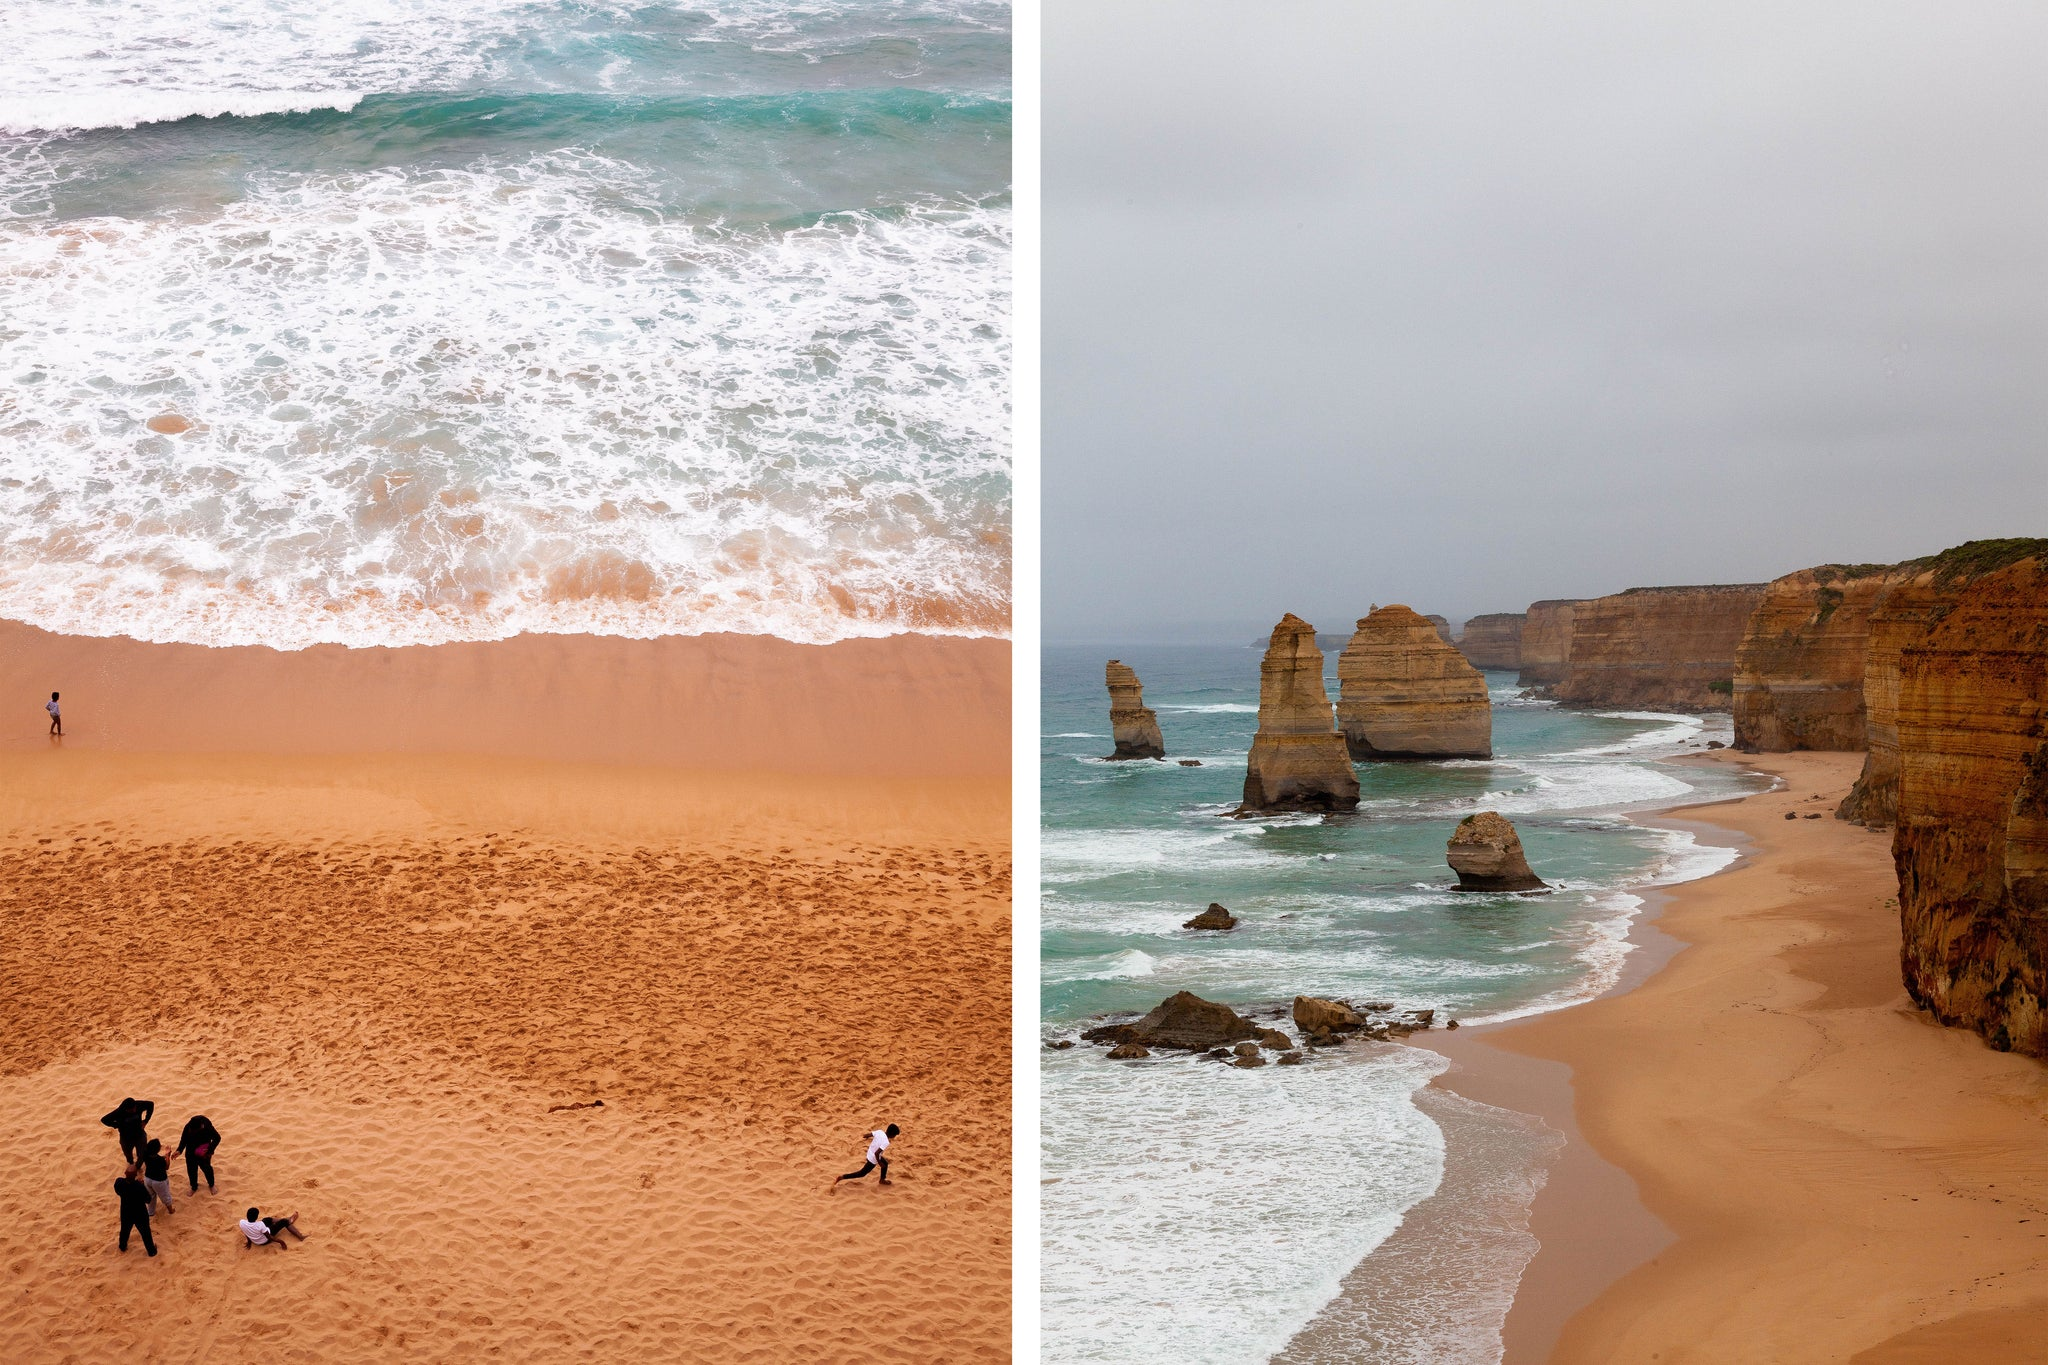 The rugged waters have cut into the limestone along the Great Ocean Road, creating its most well known landmark, the 12 Apostles.